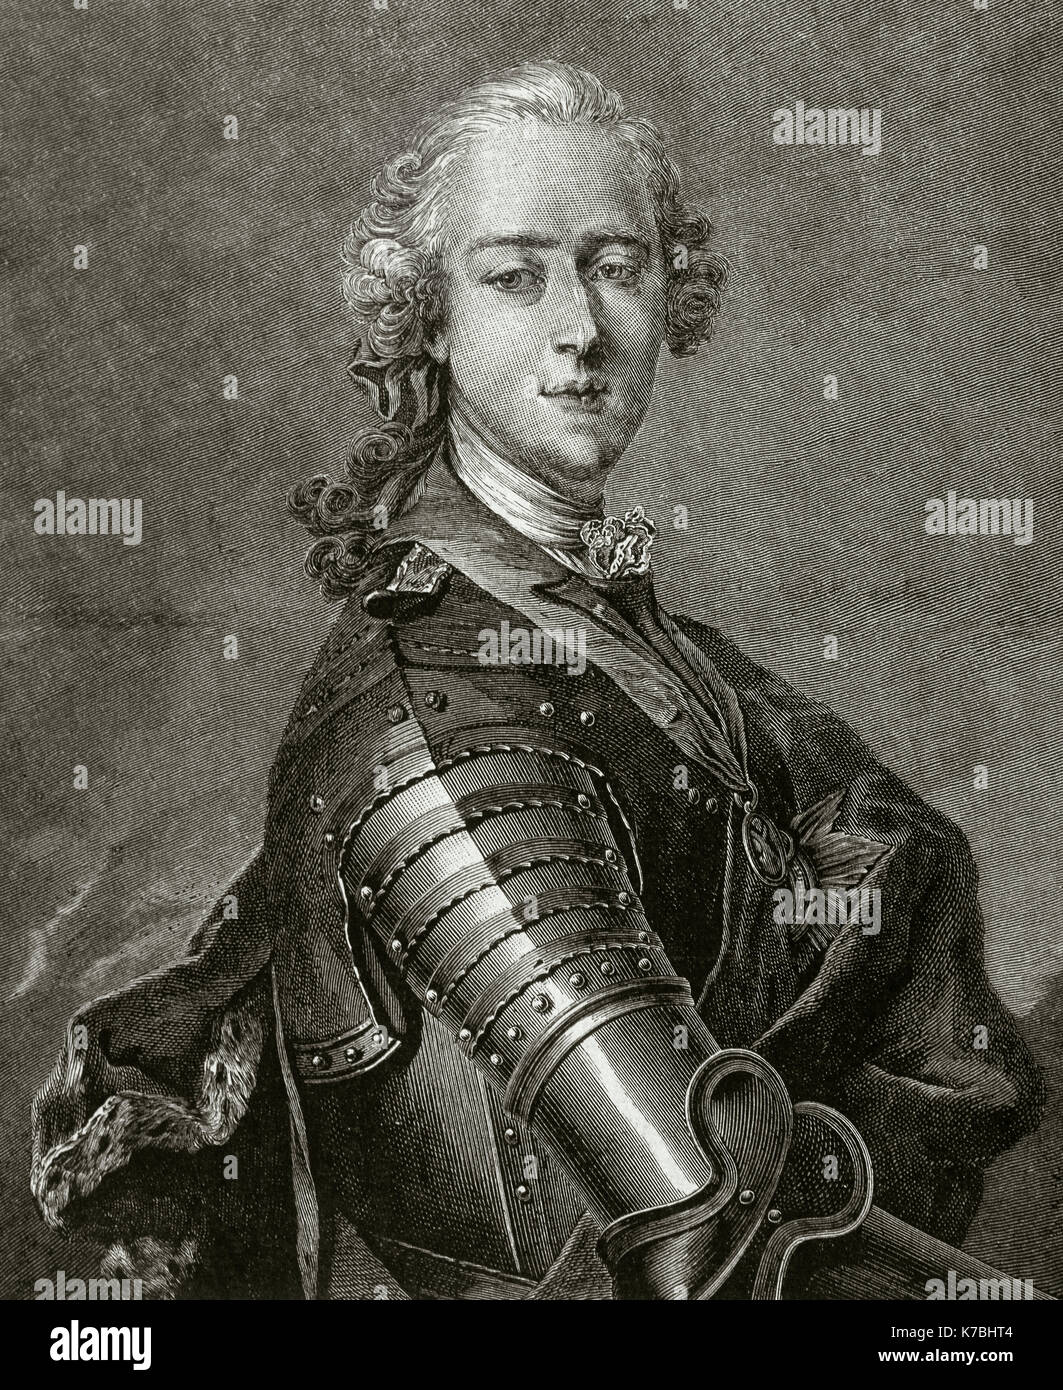 Charles Edward Stuart (1720-1788), known as The Young Pretender and The Young Chevalier. Second Jacobite pretender - Stock Image